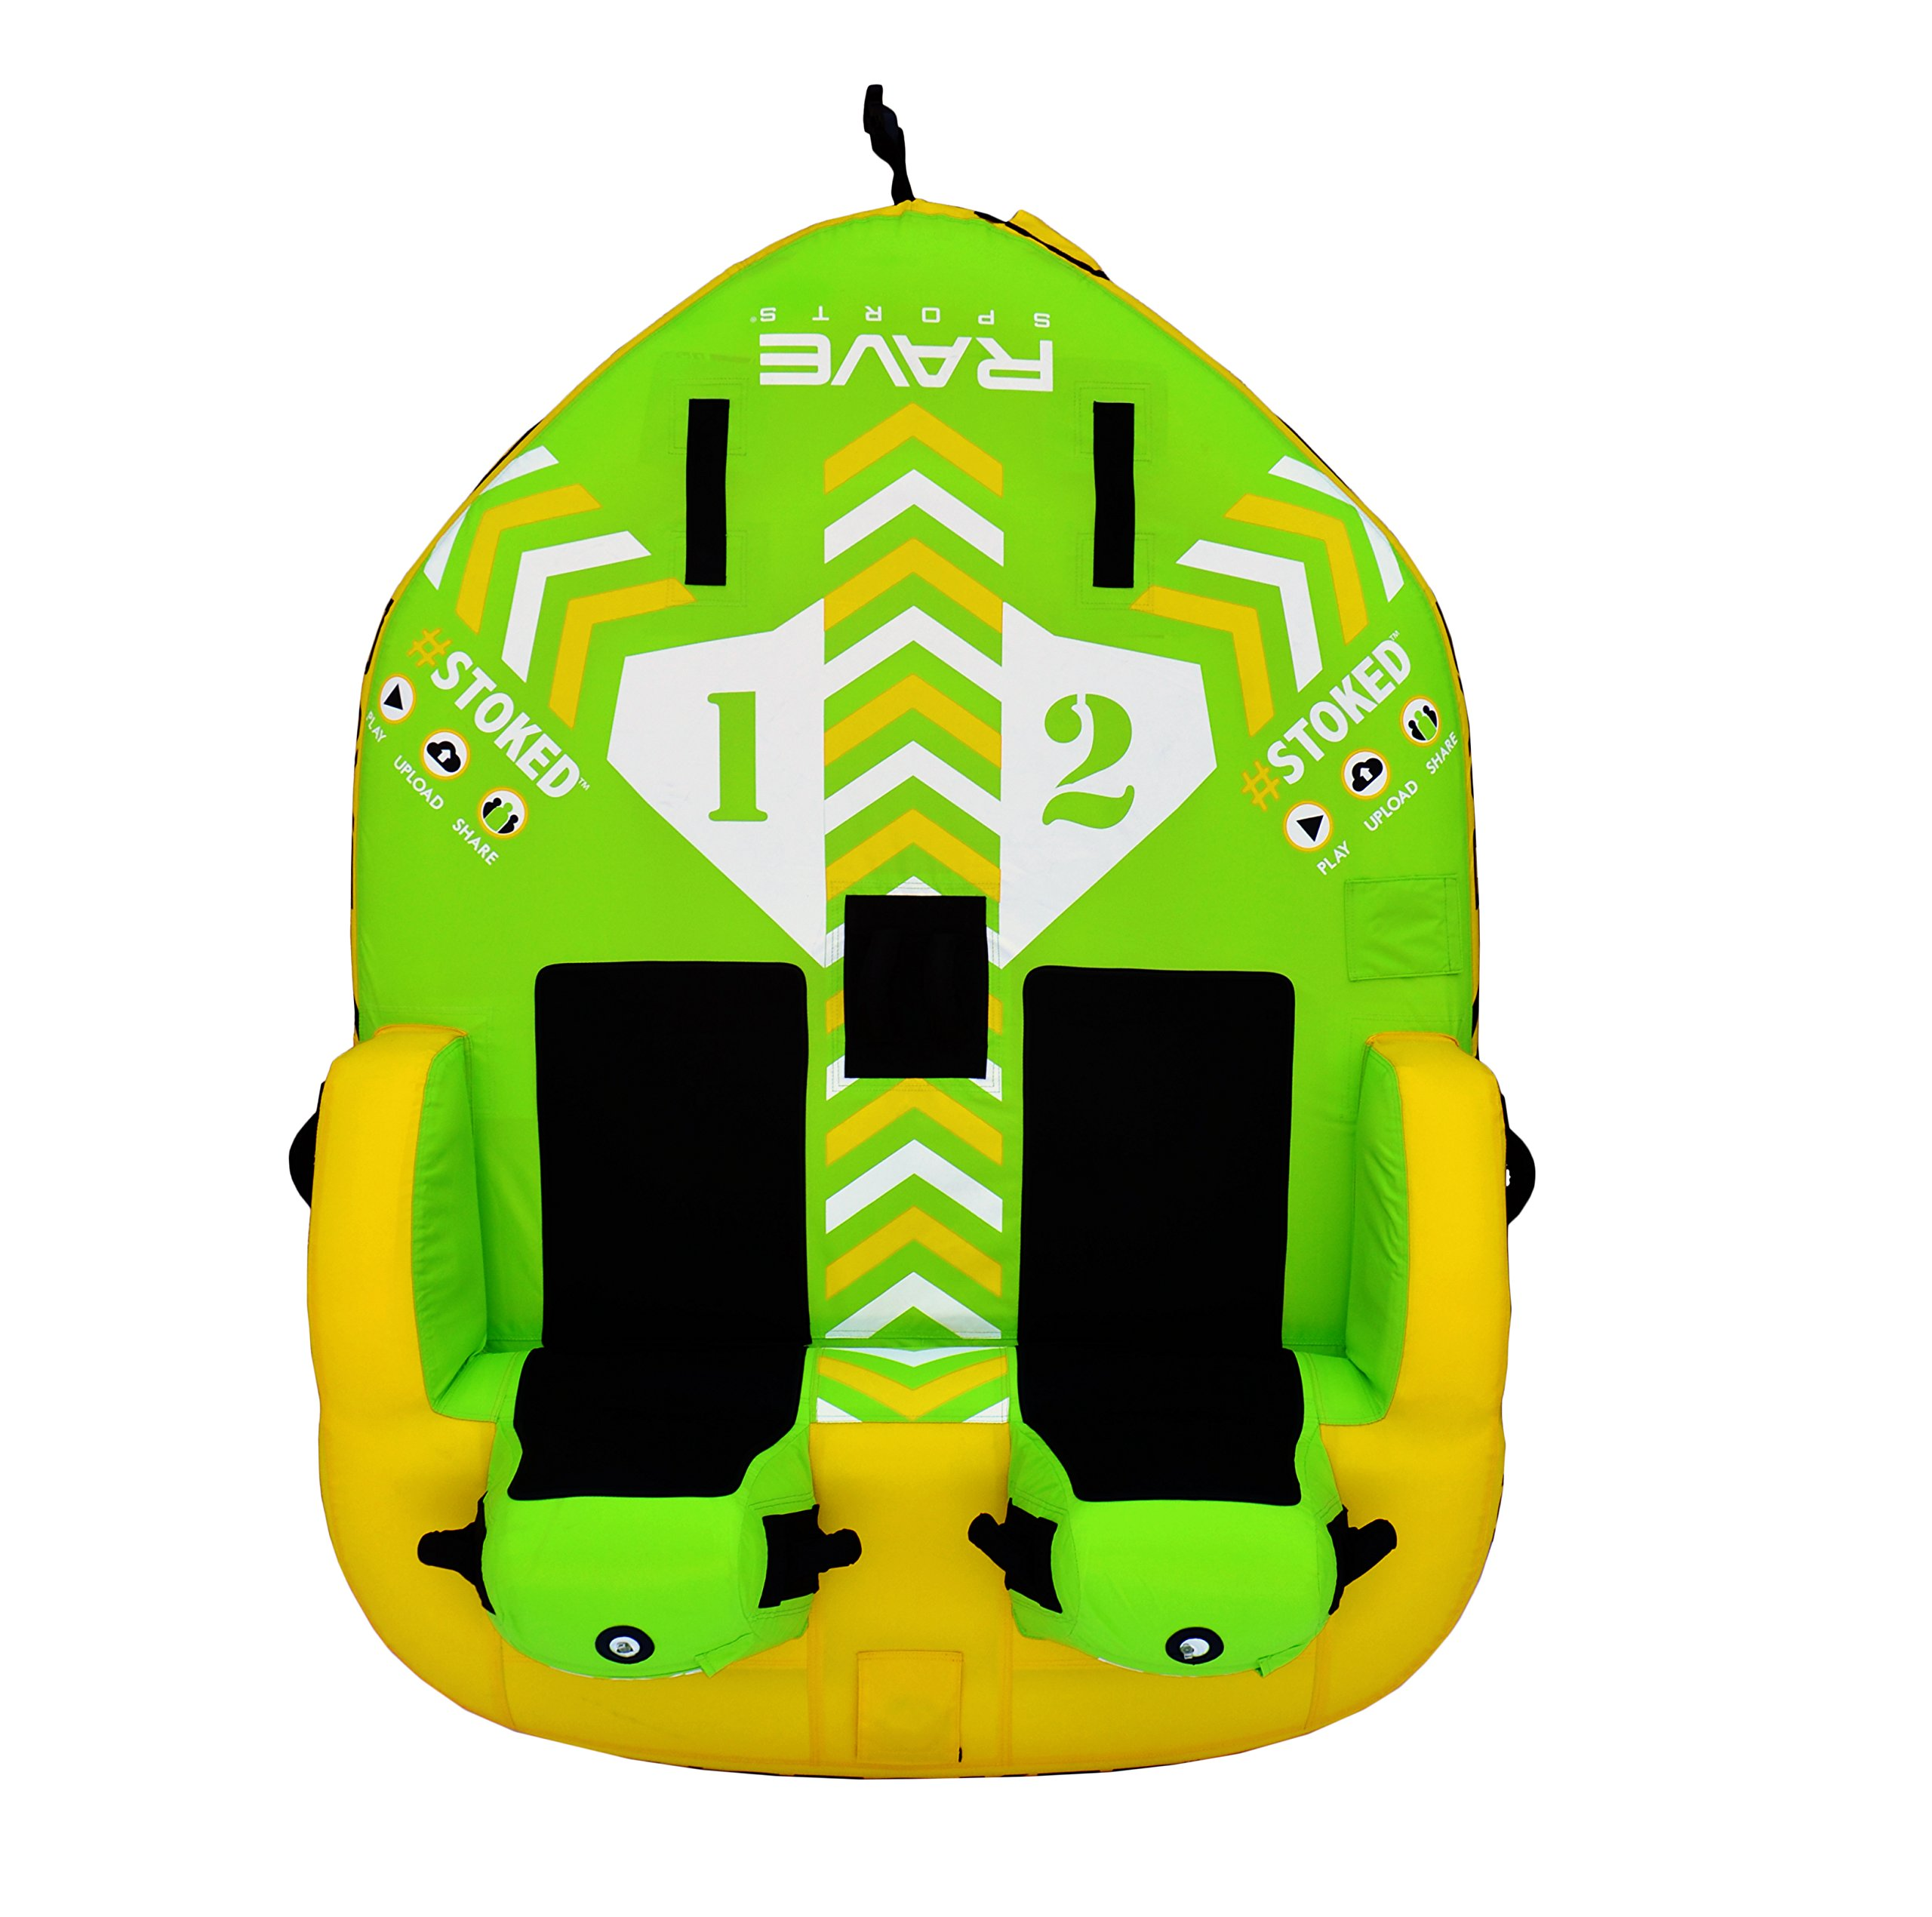 RAVE Sports 02644 #STOKED 2-Rider Towable by RAVE Sports